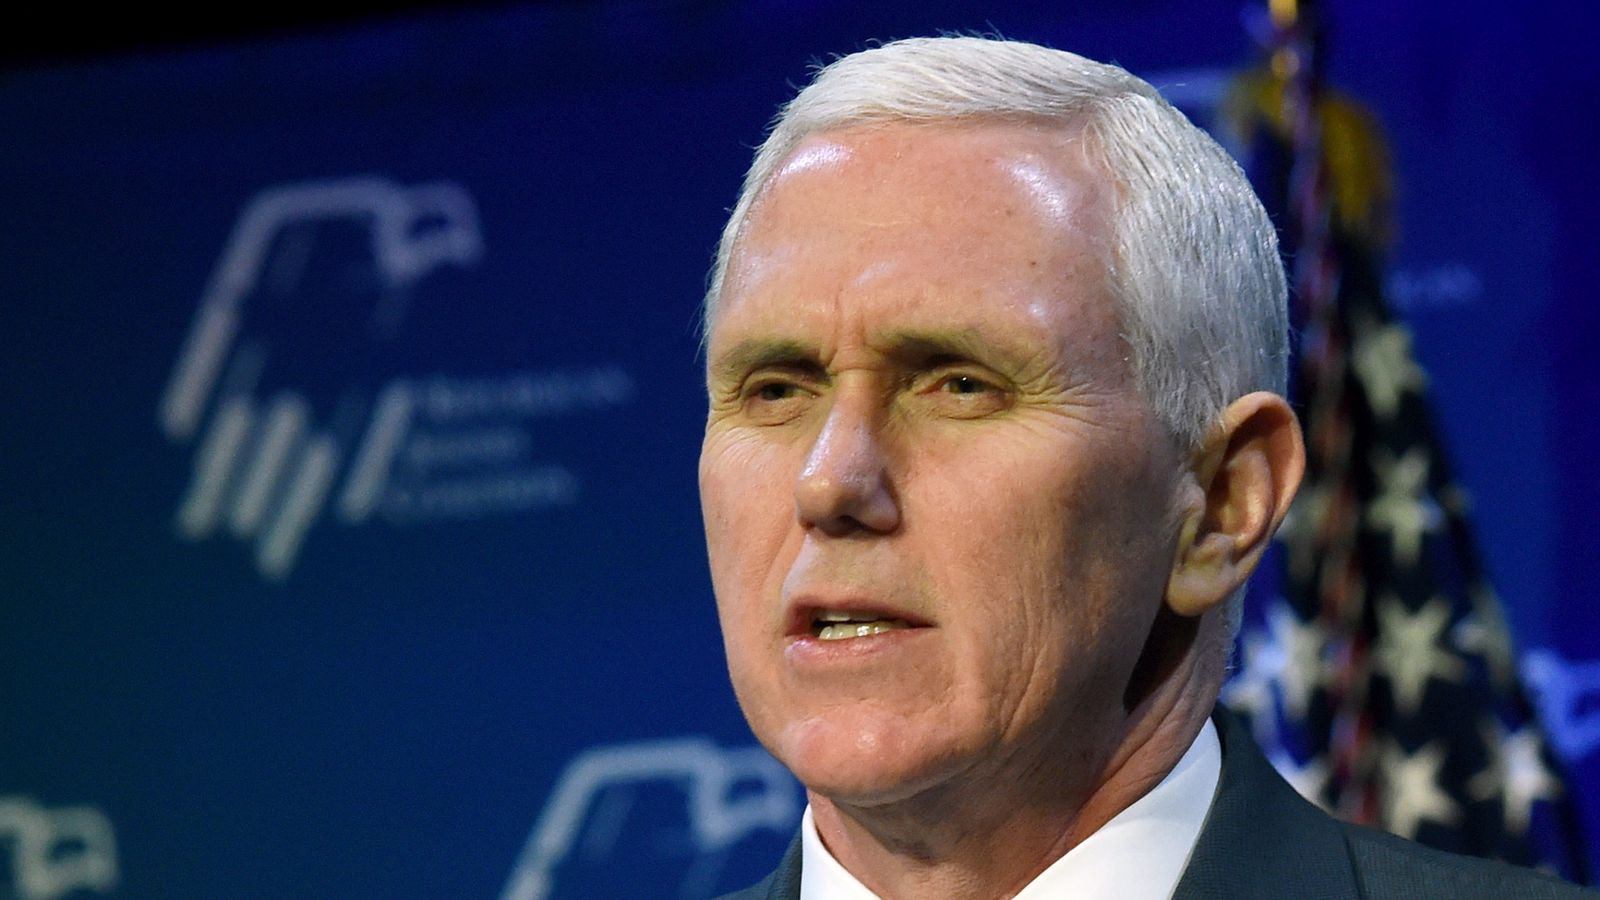 Mike Pence Used His Aol Email For Indiana State Business